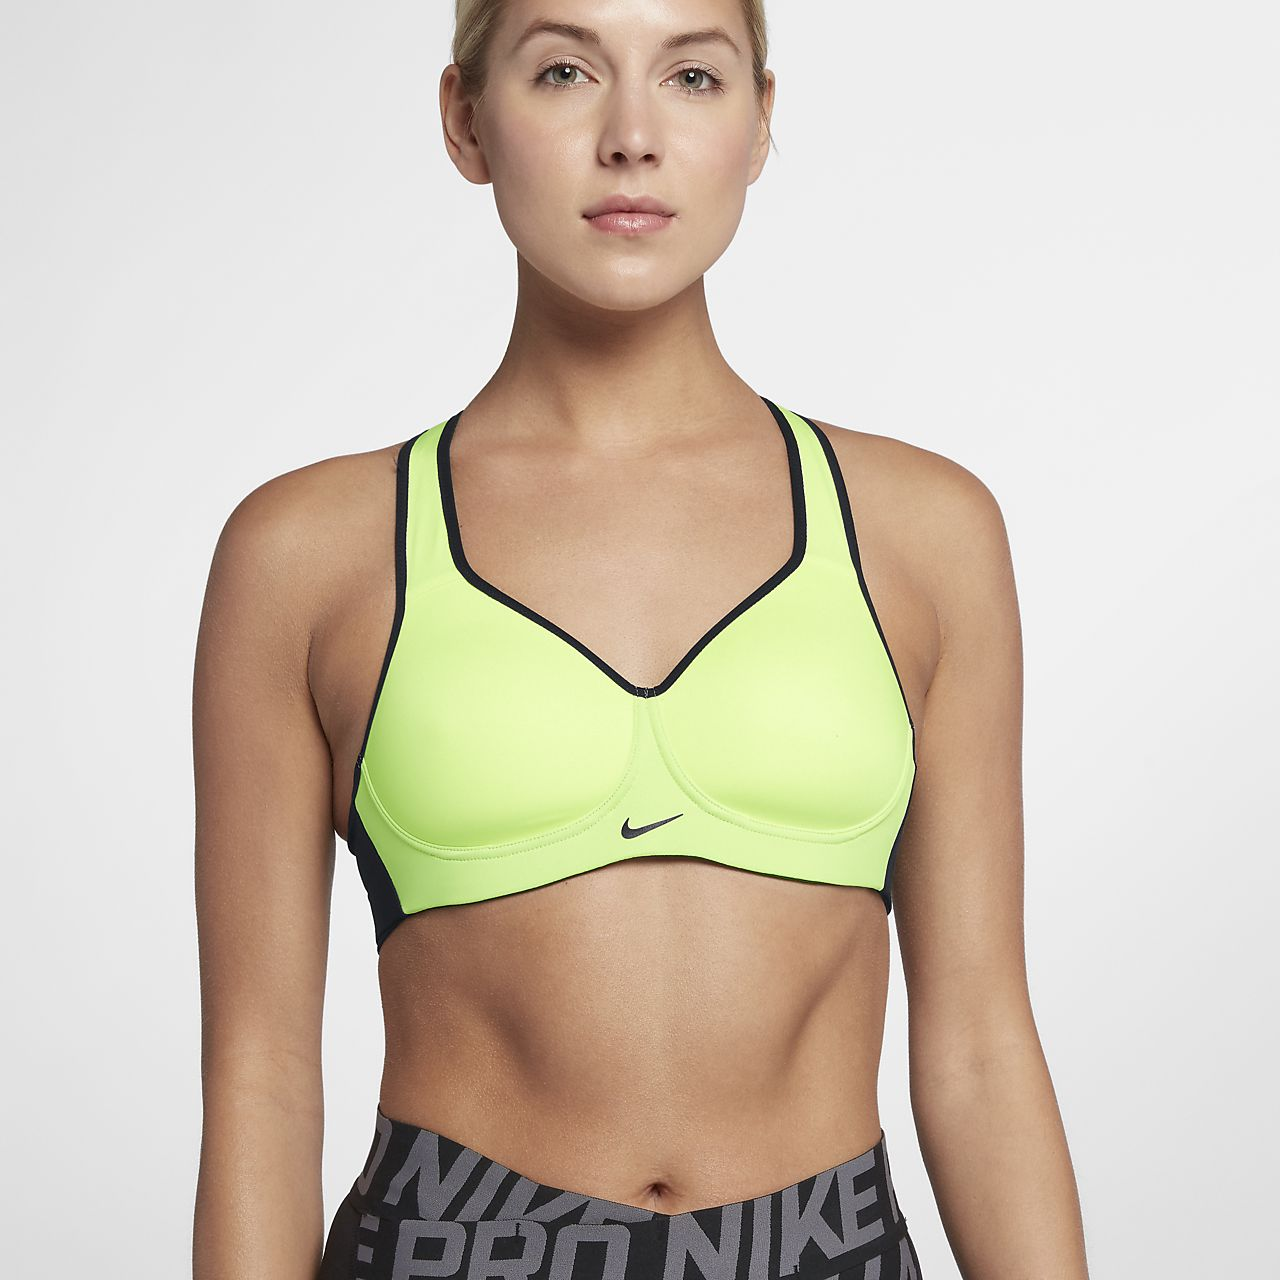 ... Nike Rival Women's High-Support Sports Bra